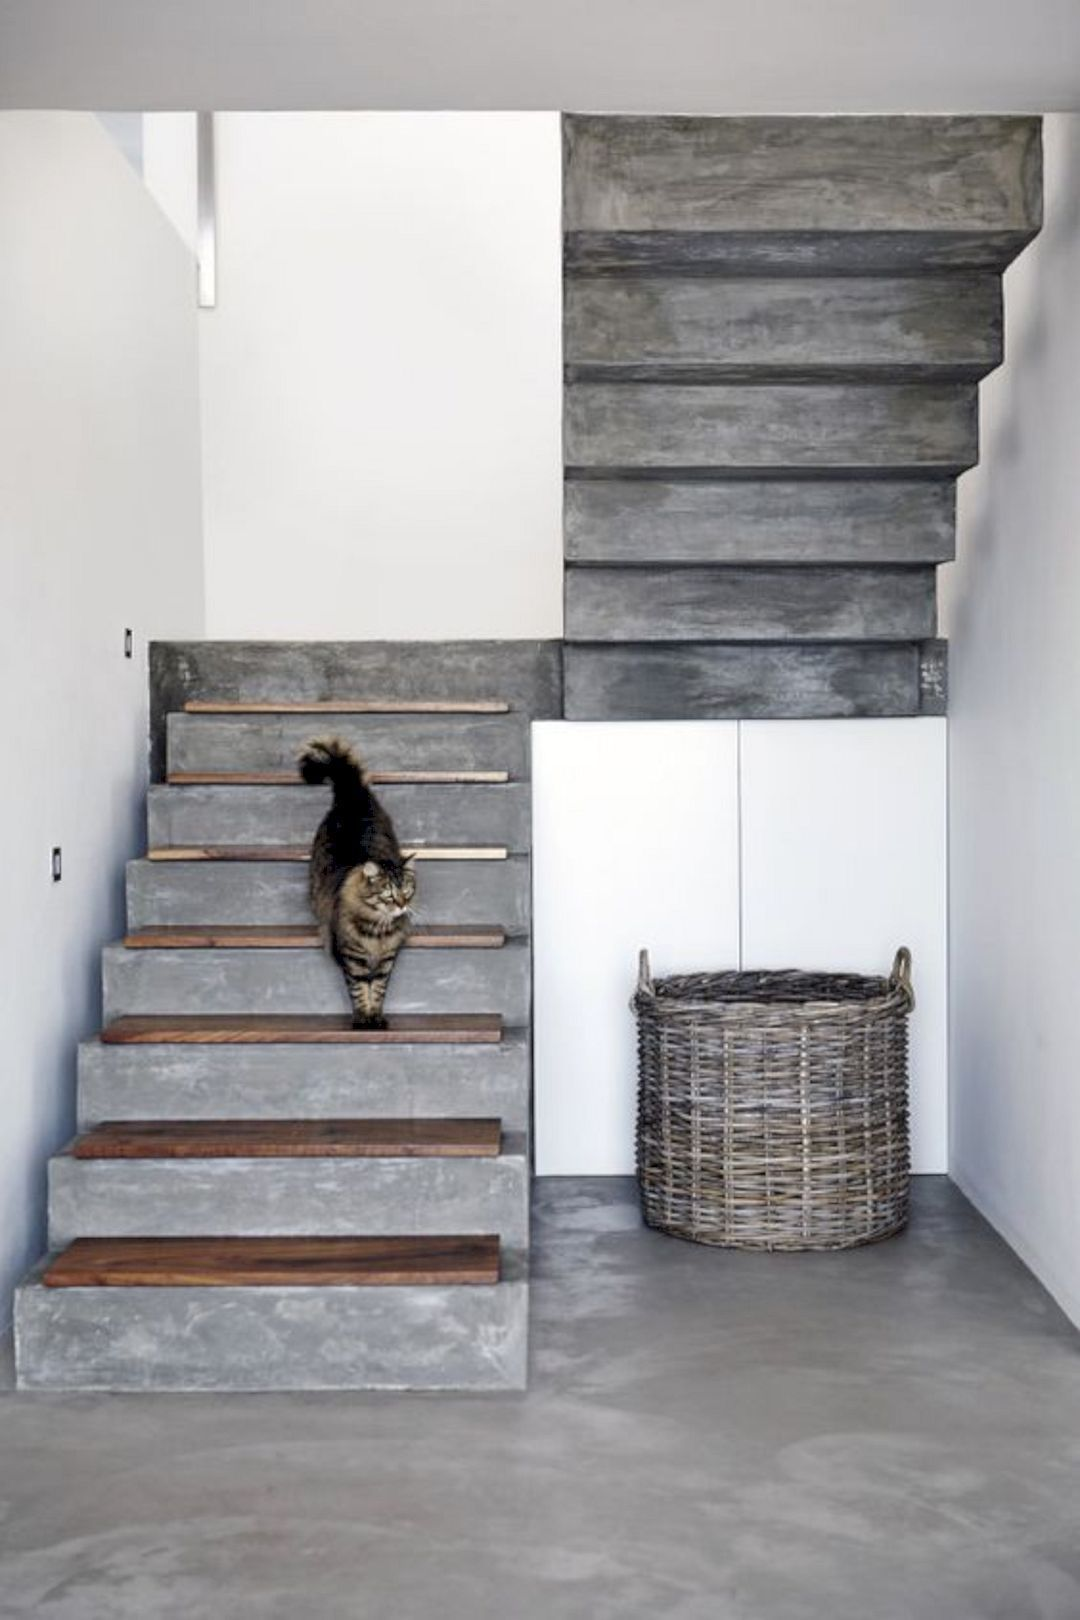 1a22aa7b742ef80f6702ab31b76e72d8 - Download Simple Stair Design For Small House  Background